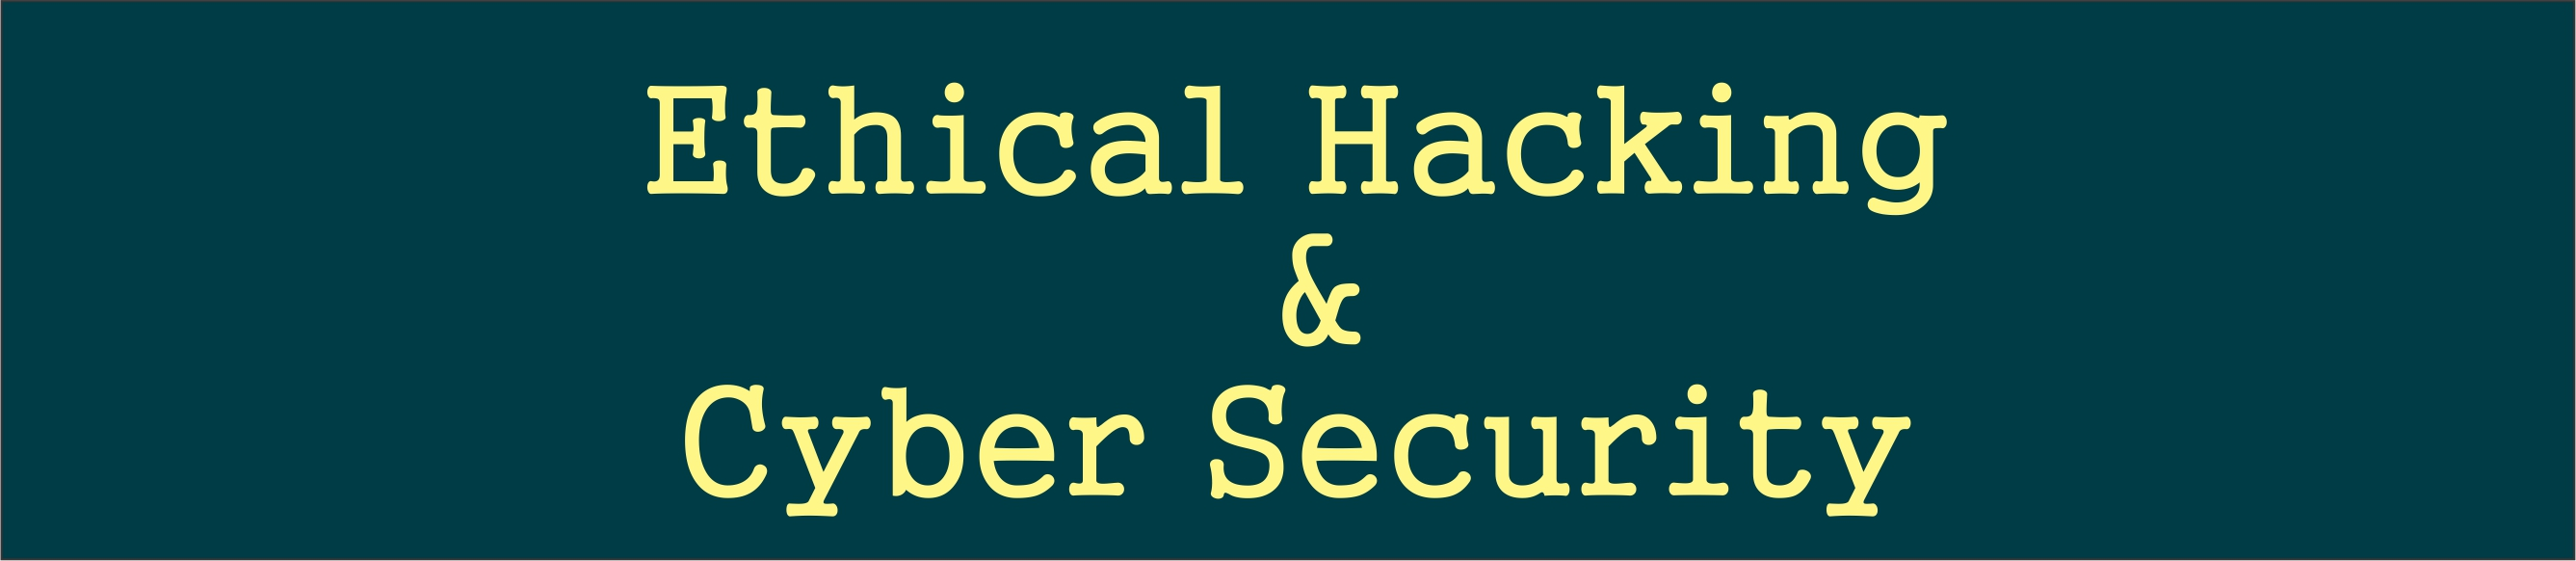 I3indya Ethical Hacking Cyber Security Summer Internship 2019